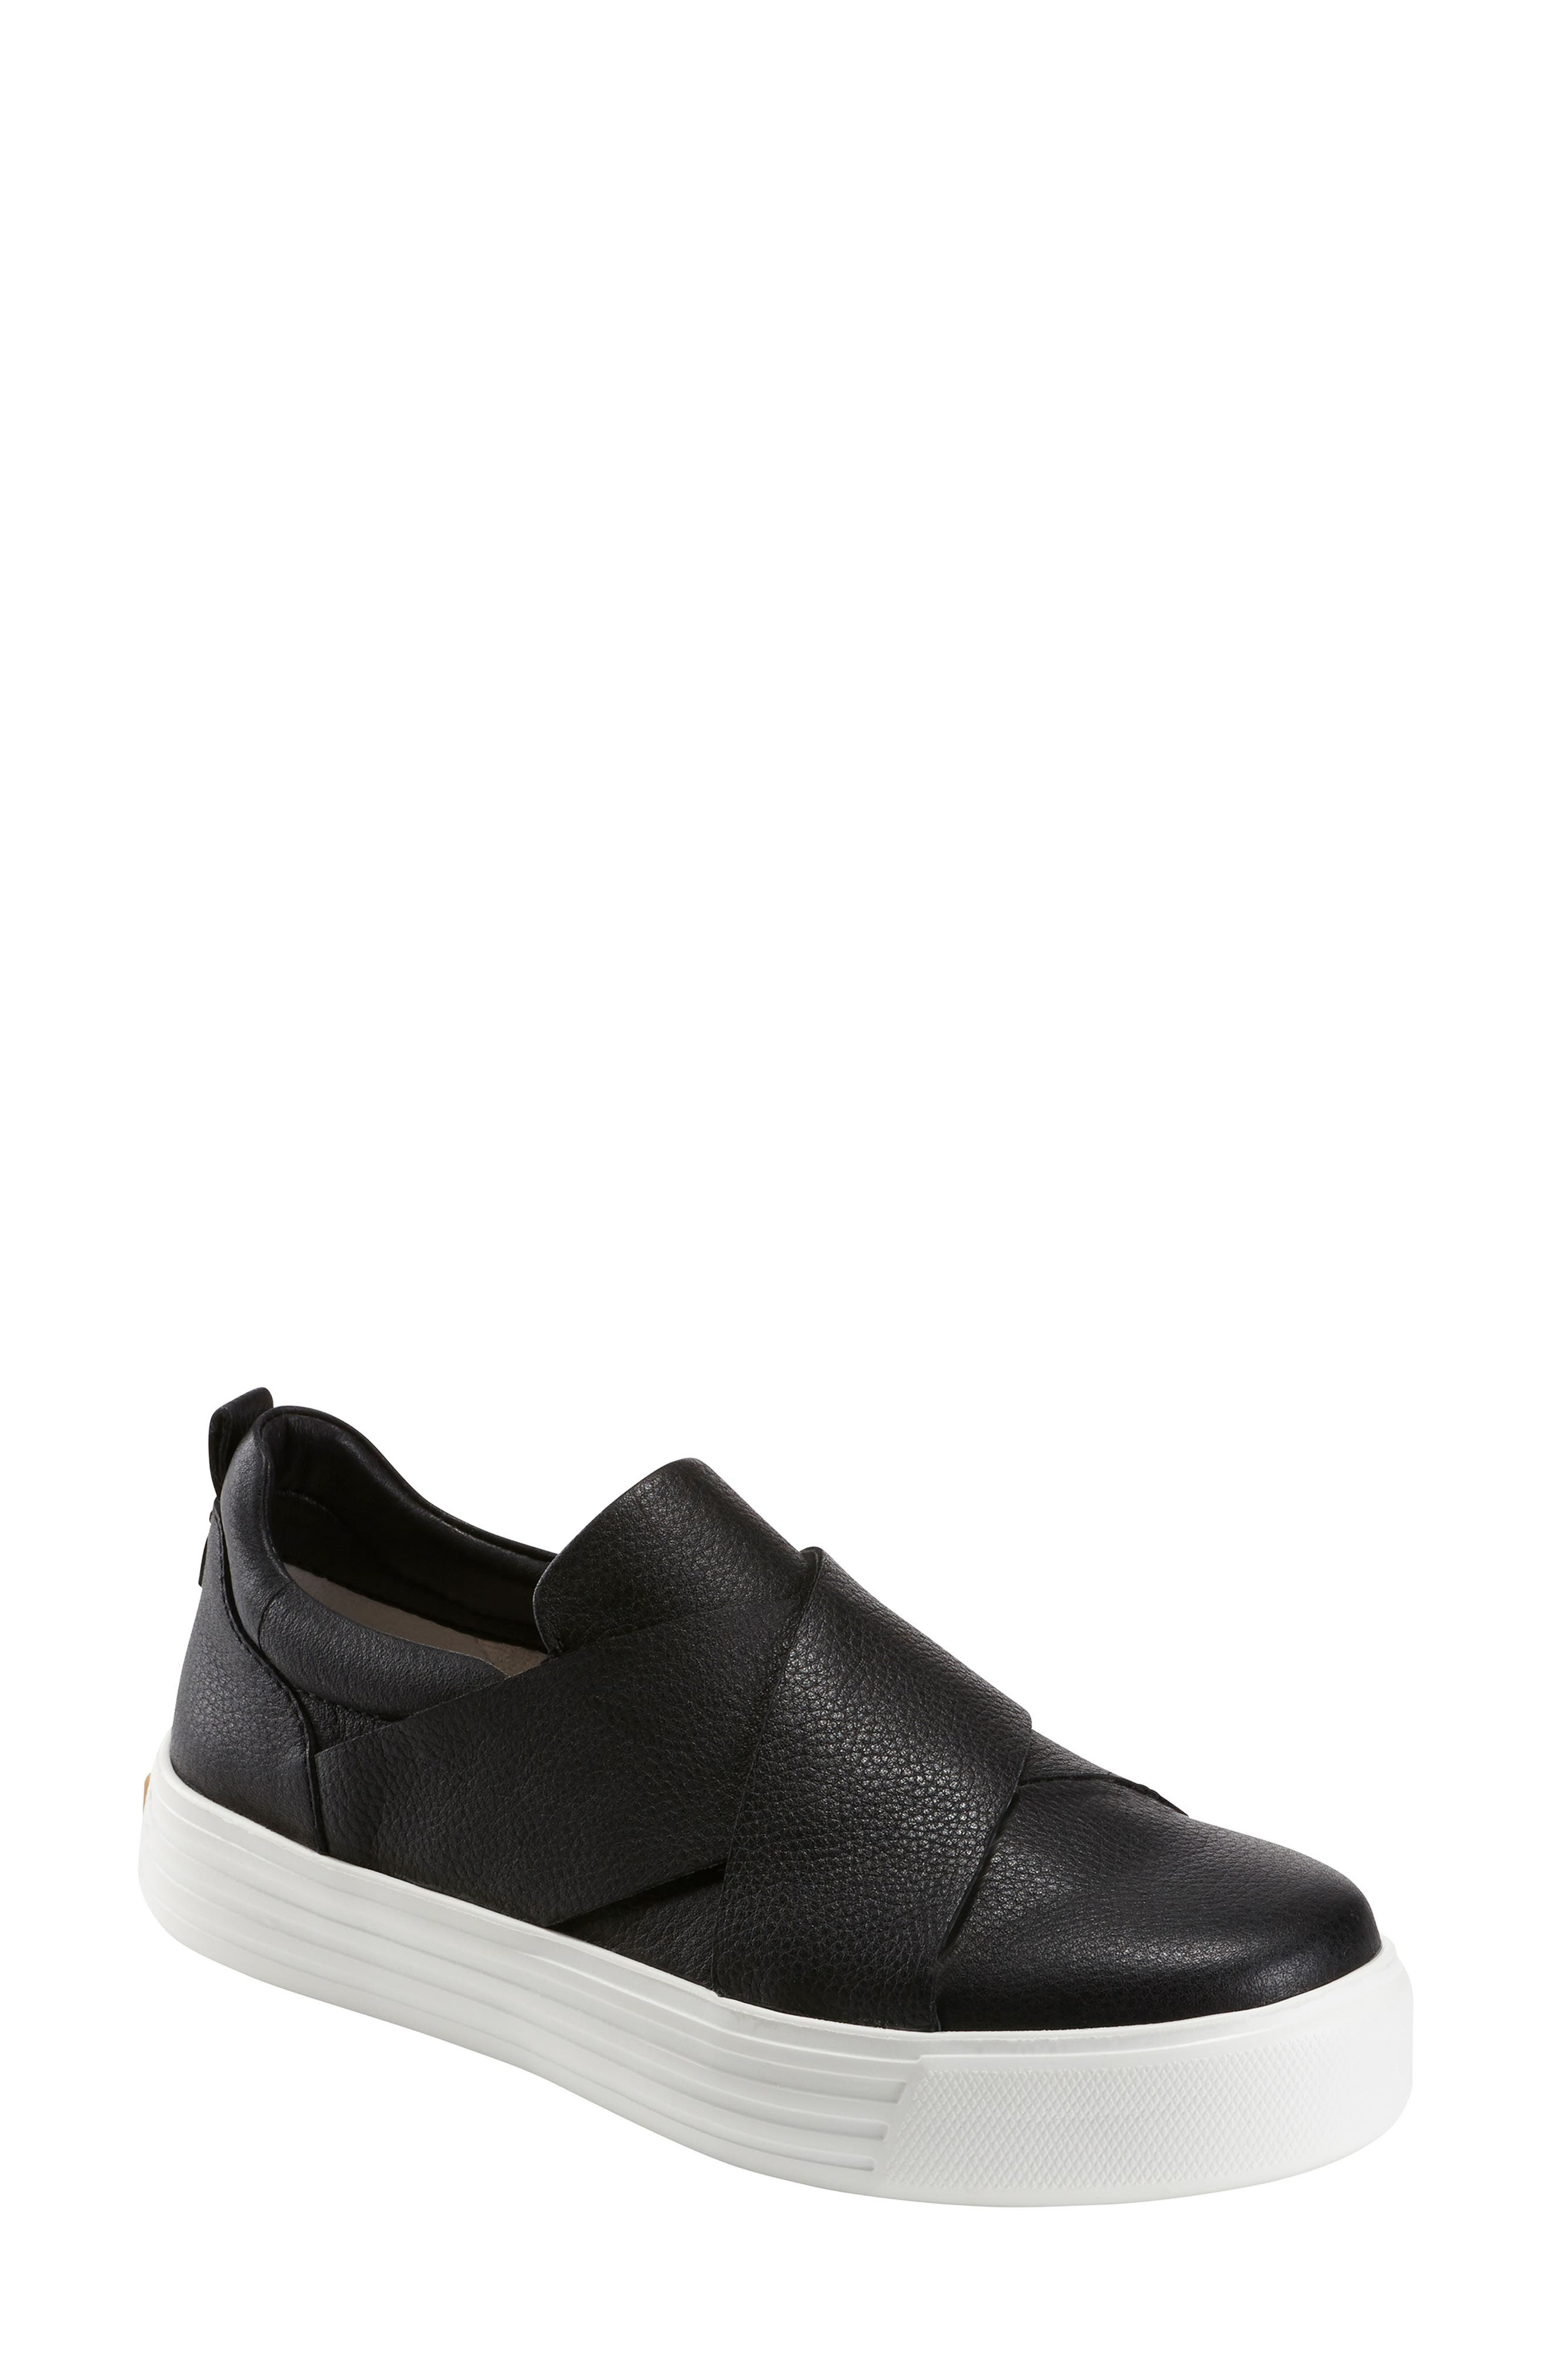 EARTH<SUP>®</SUP>, Clary Sneaker, Main thumbnail 1, color, BLACK LEATHER